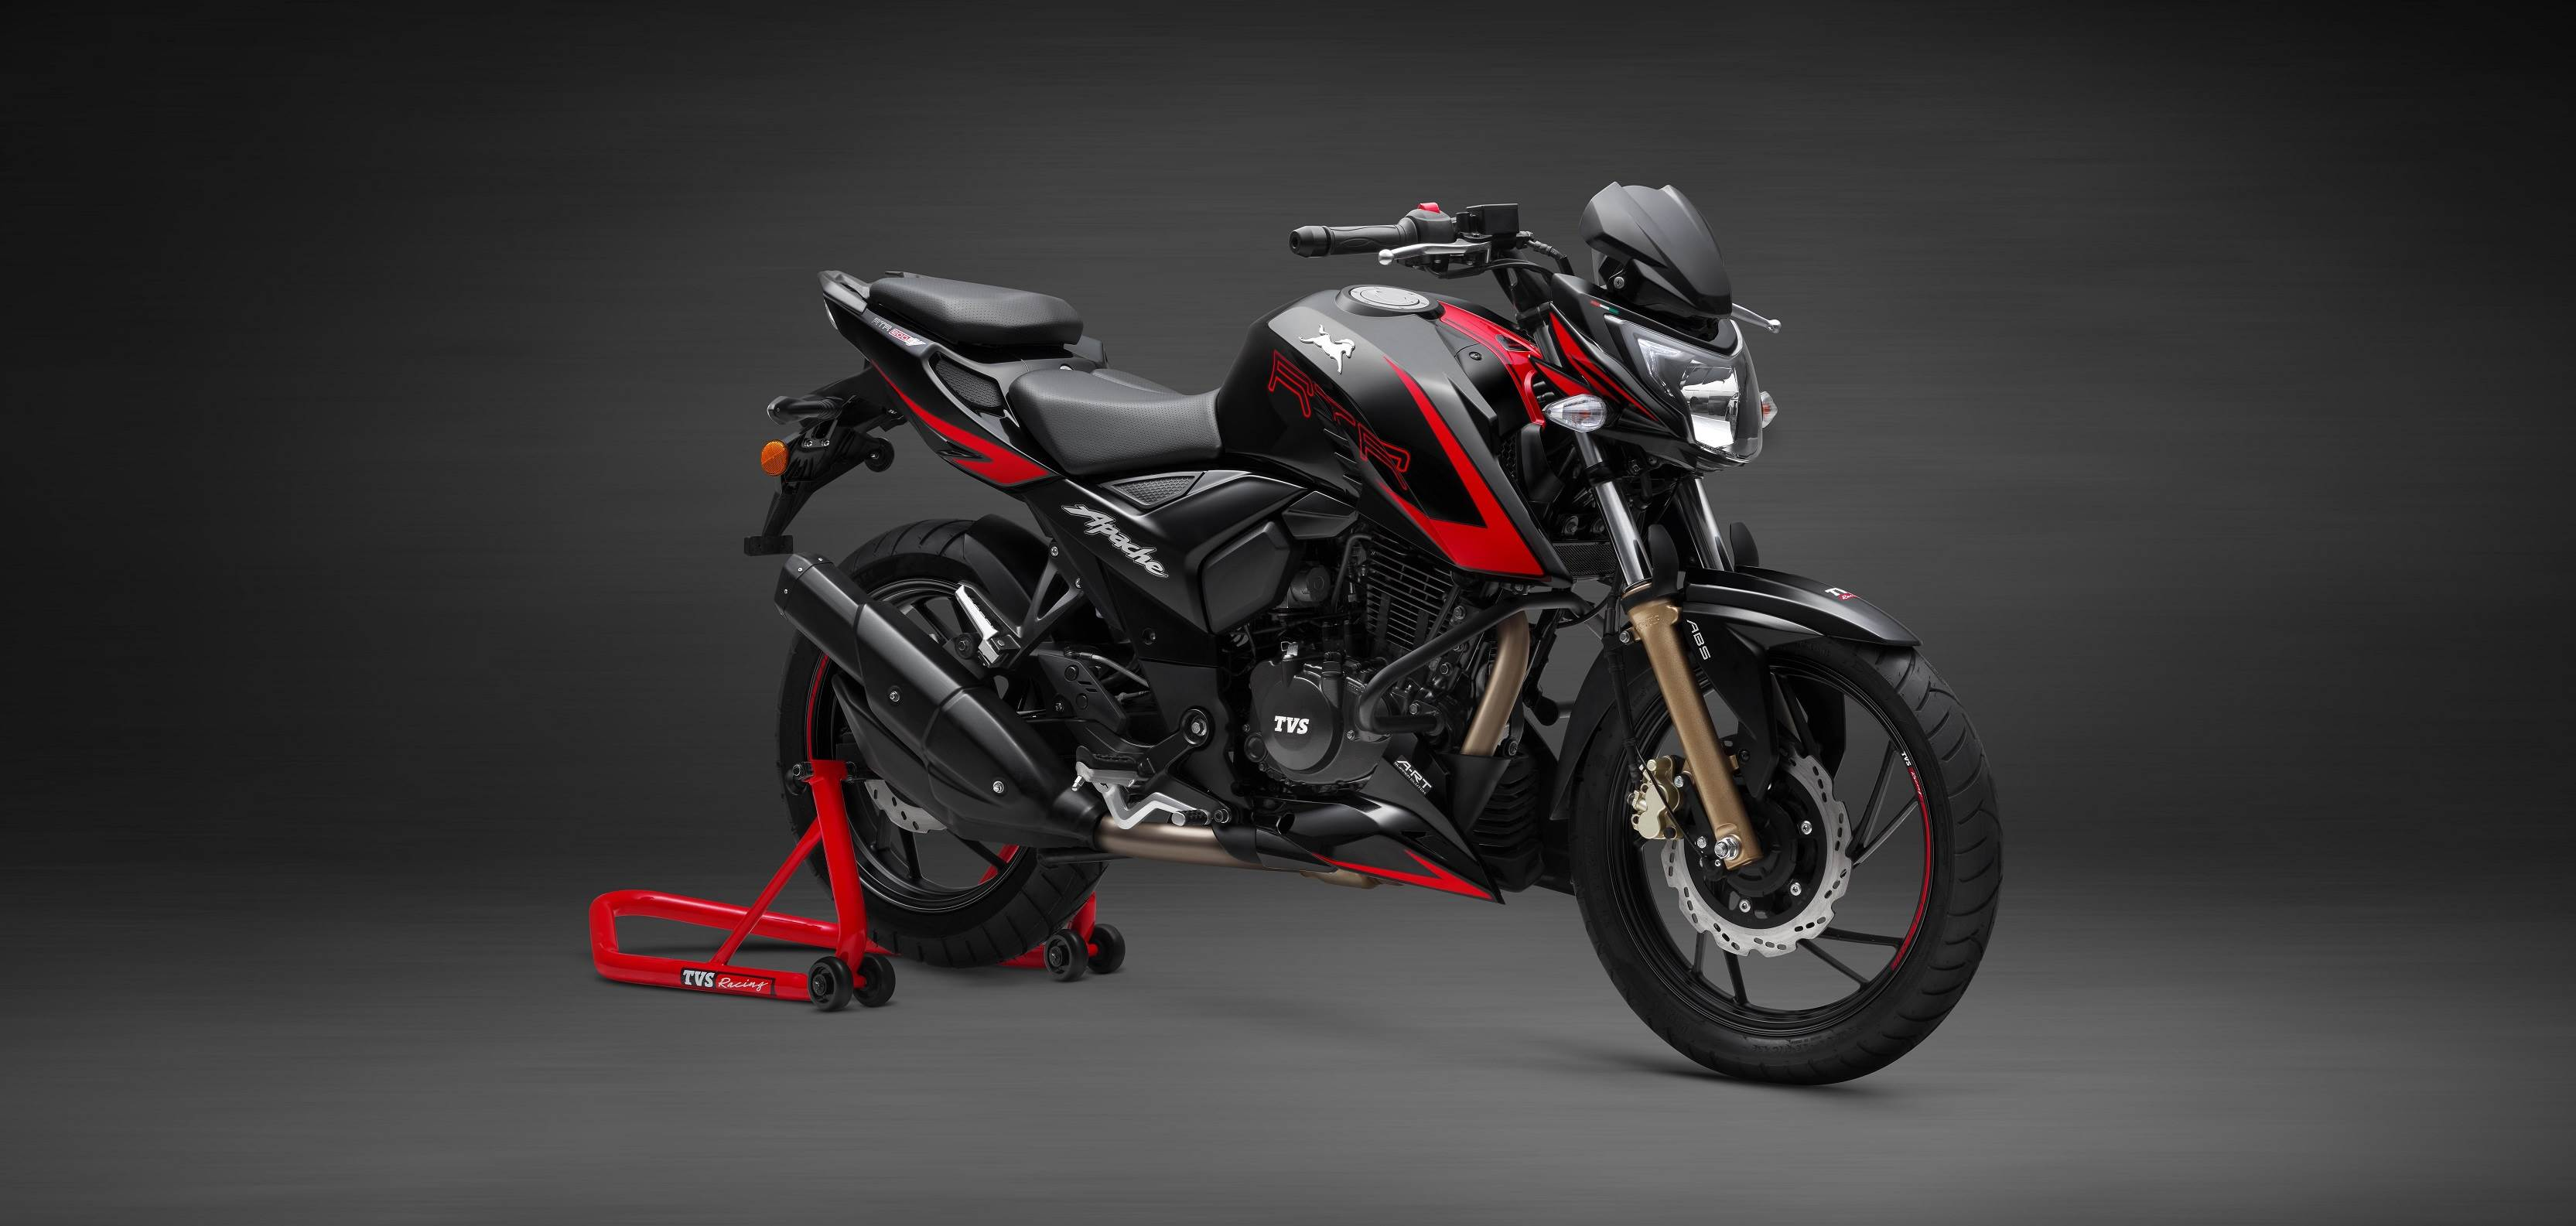 Tvs Apache Rtr 200 4v Race Edition 2 0 Launched At Rs